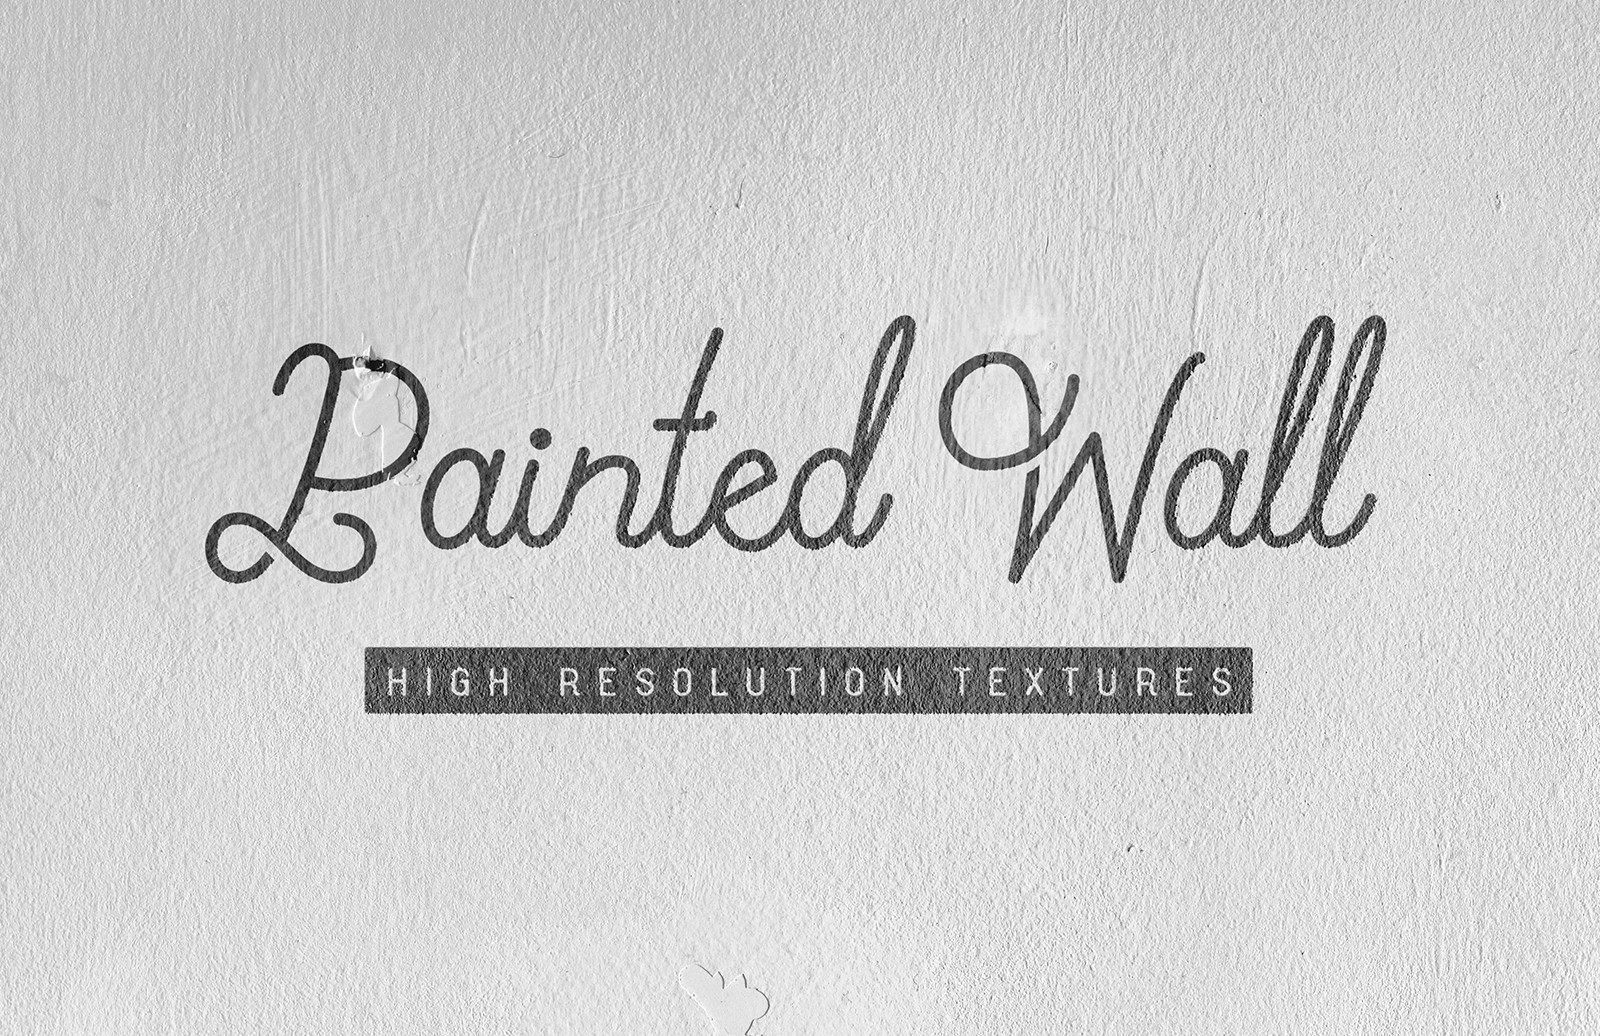 White Painted Wall Textures